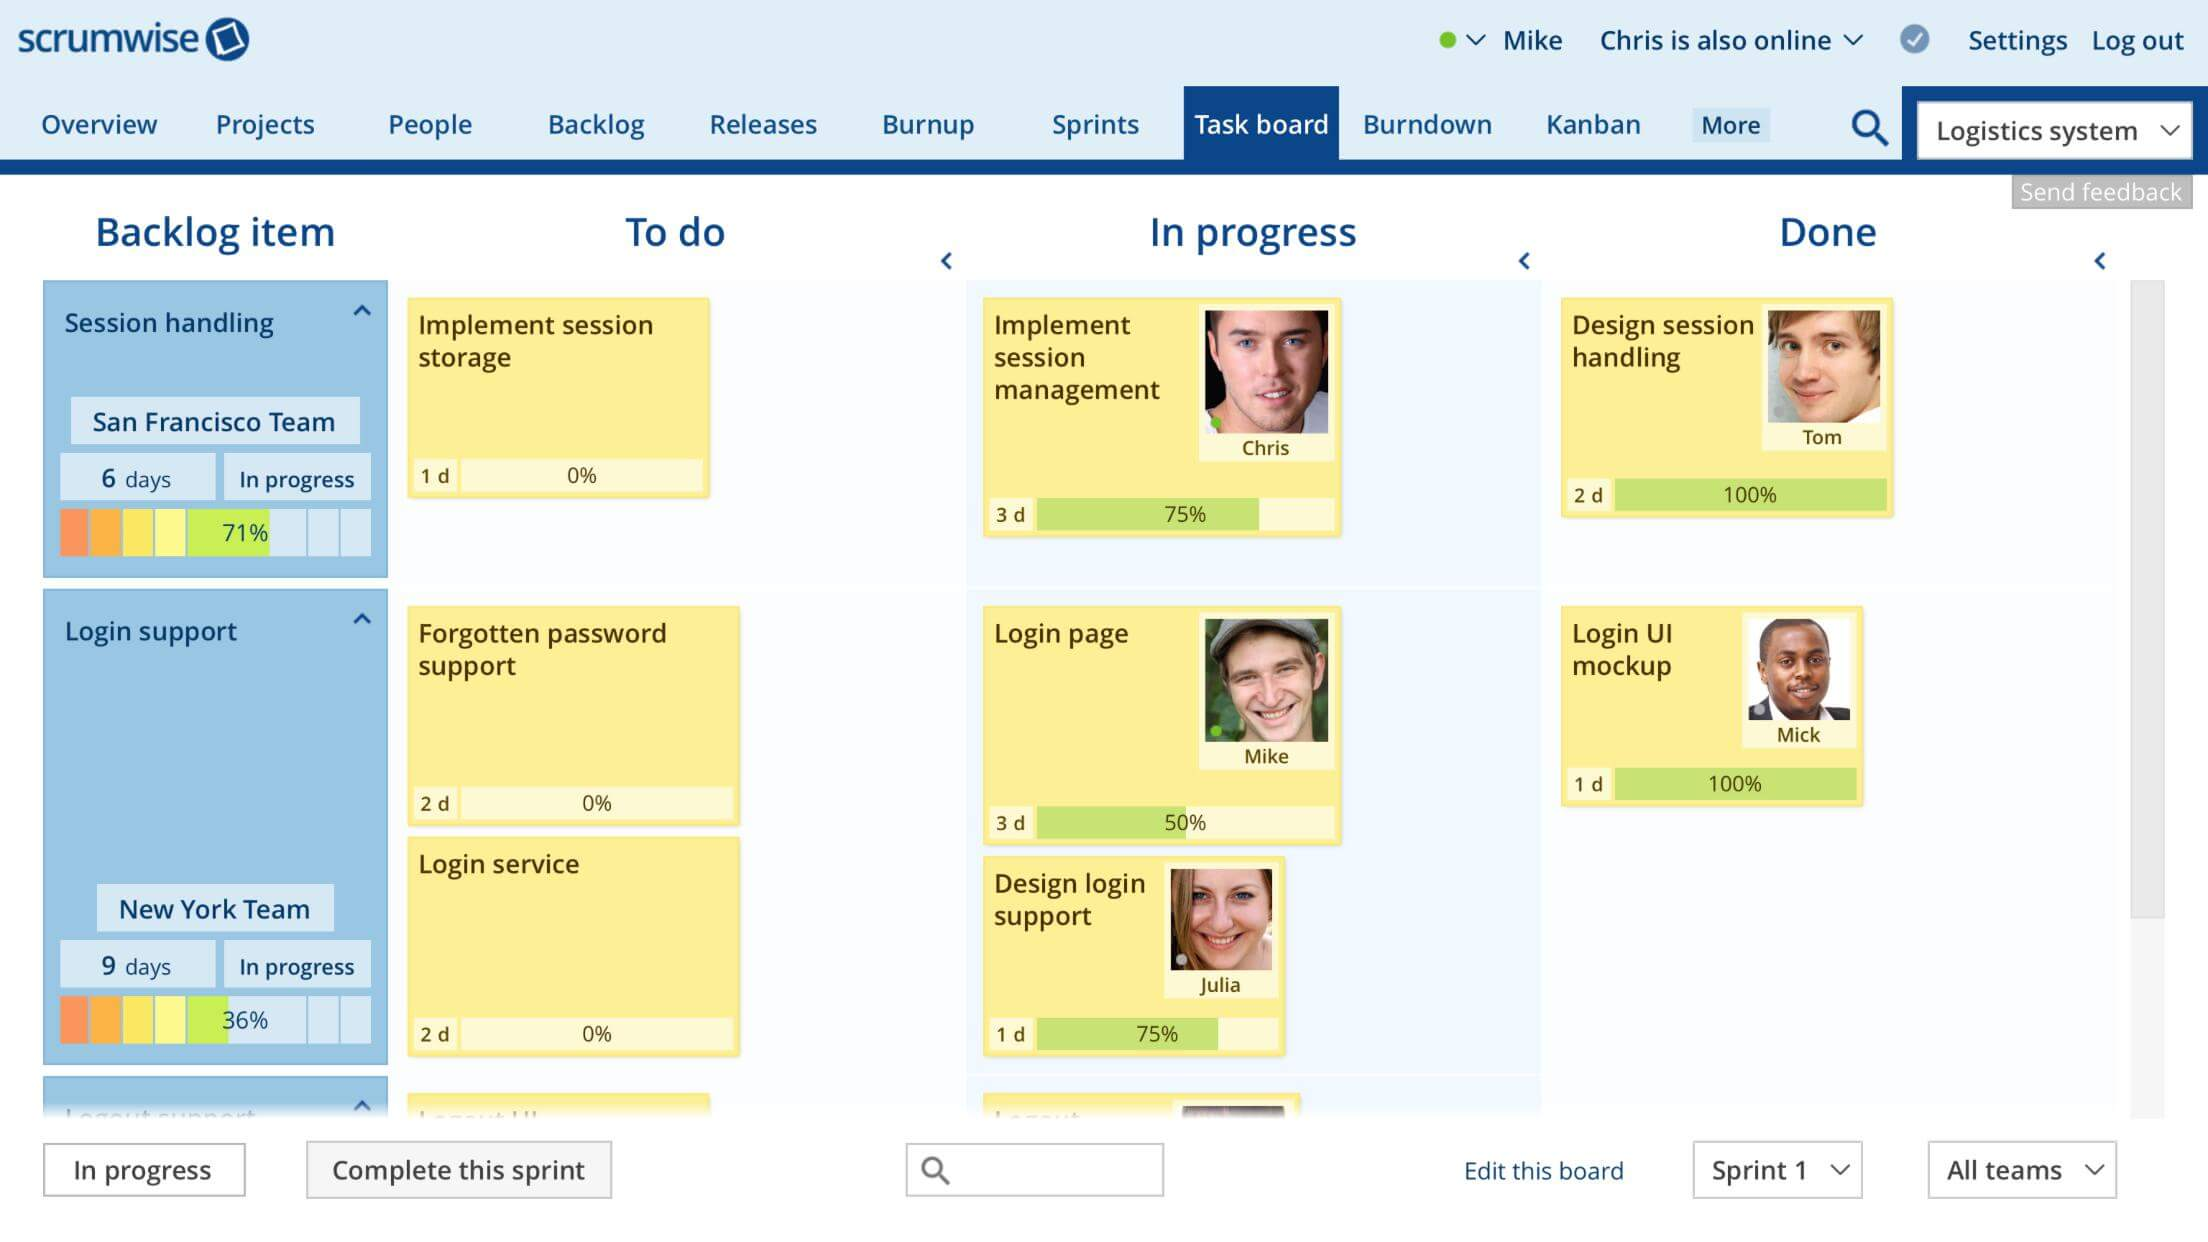 scrum, scrum 2020, scrum methodology, scrum methodologies latest, scrum software apps